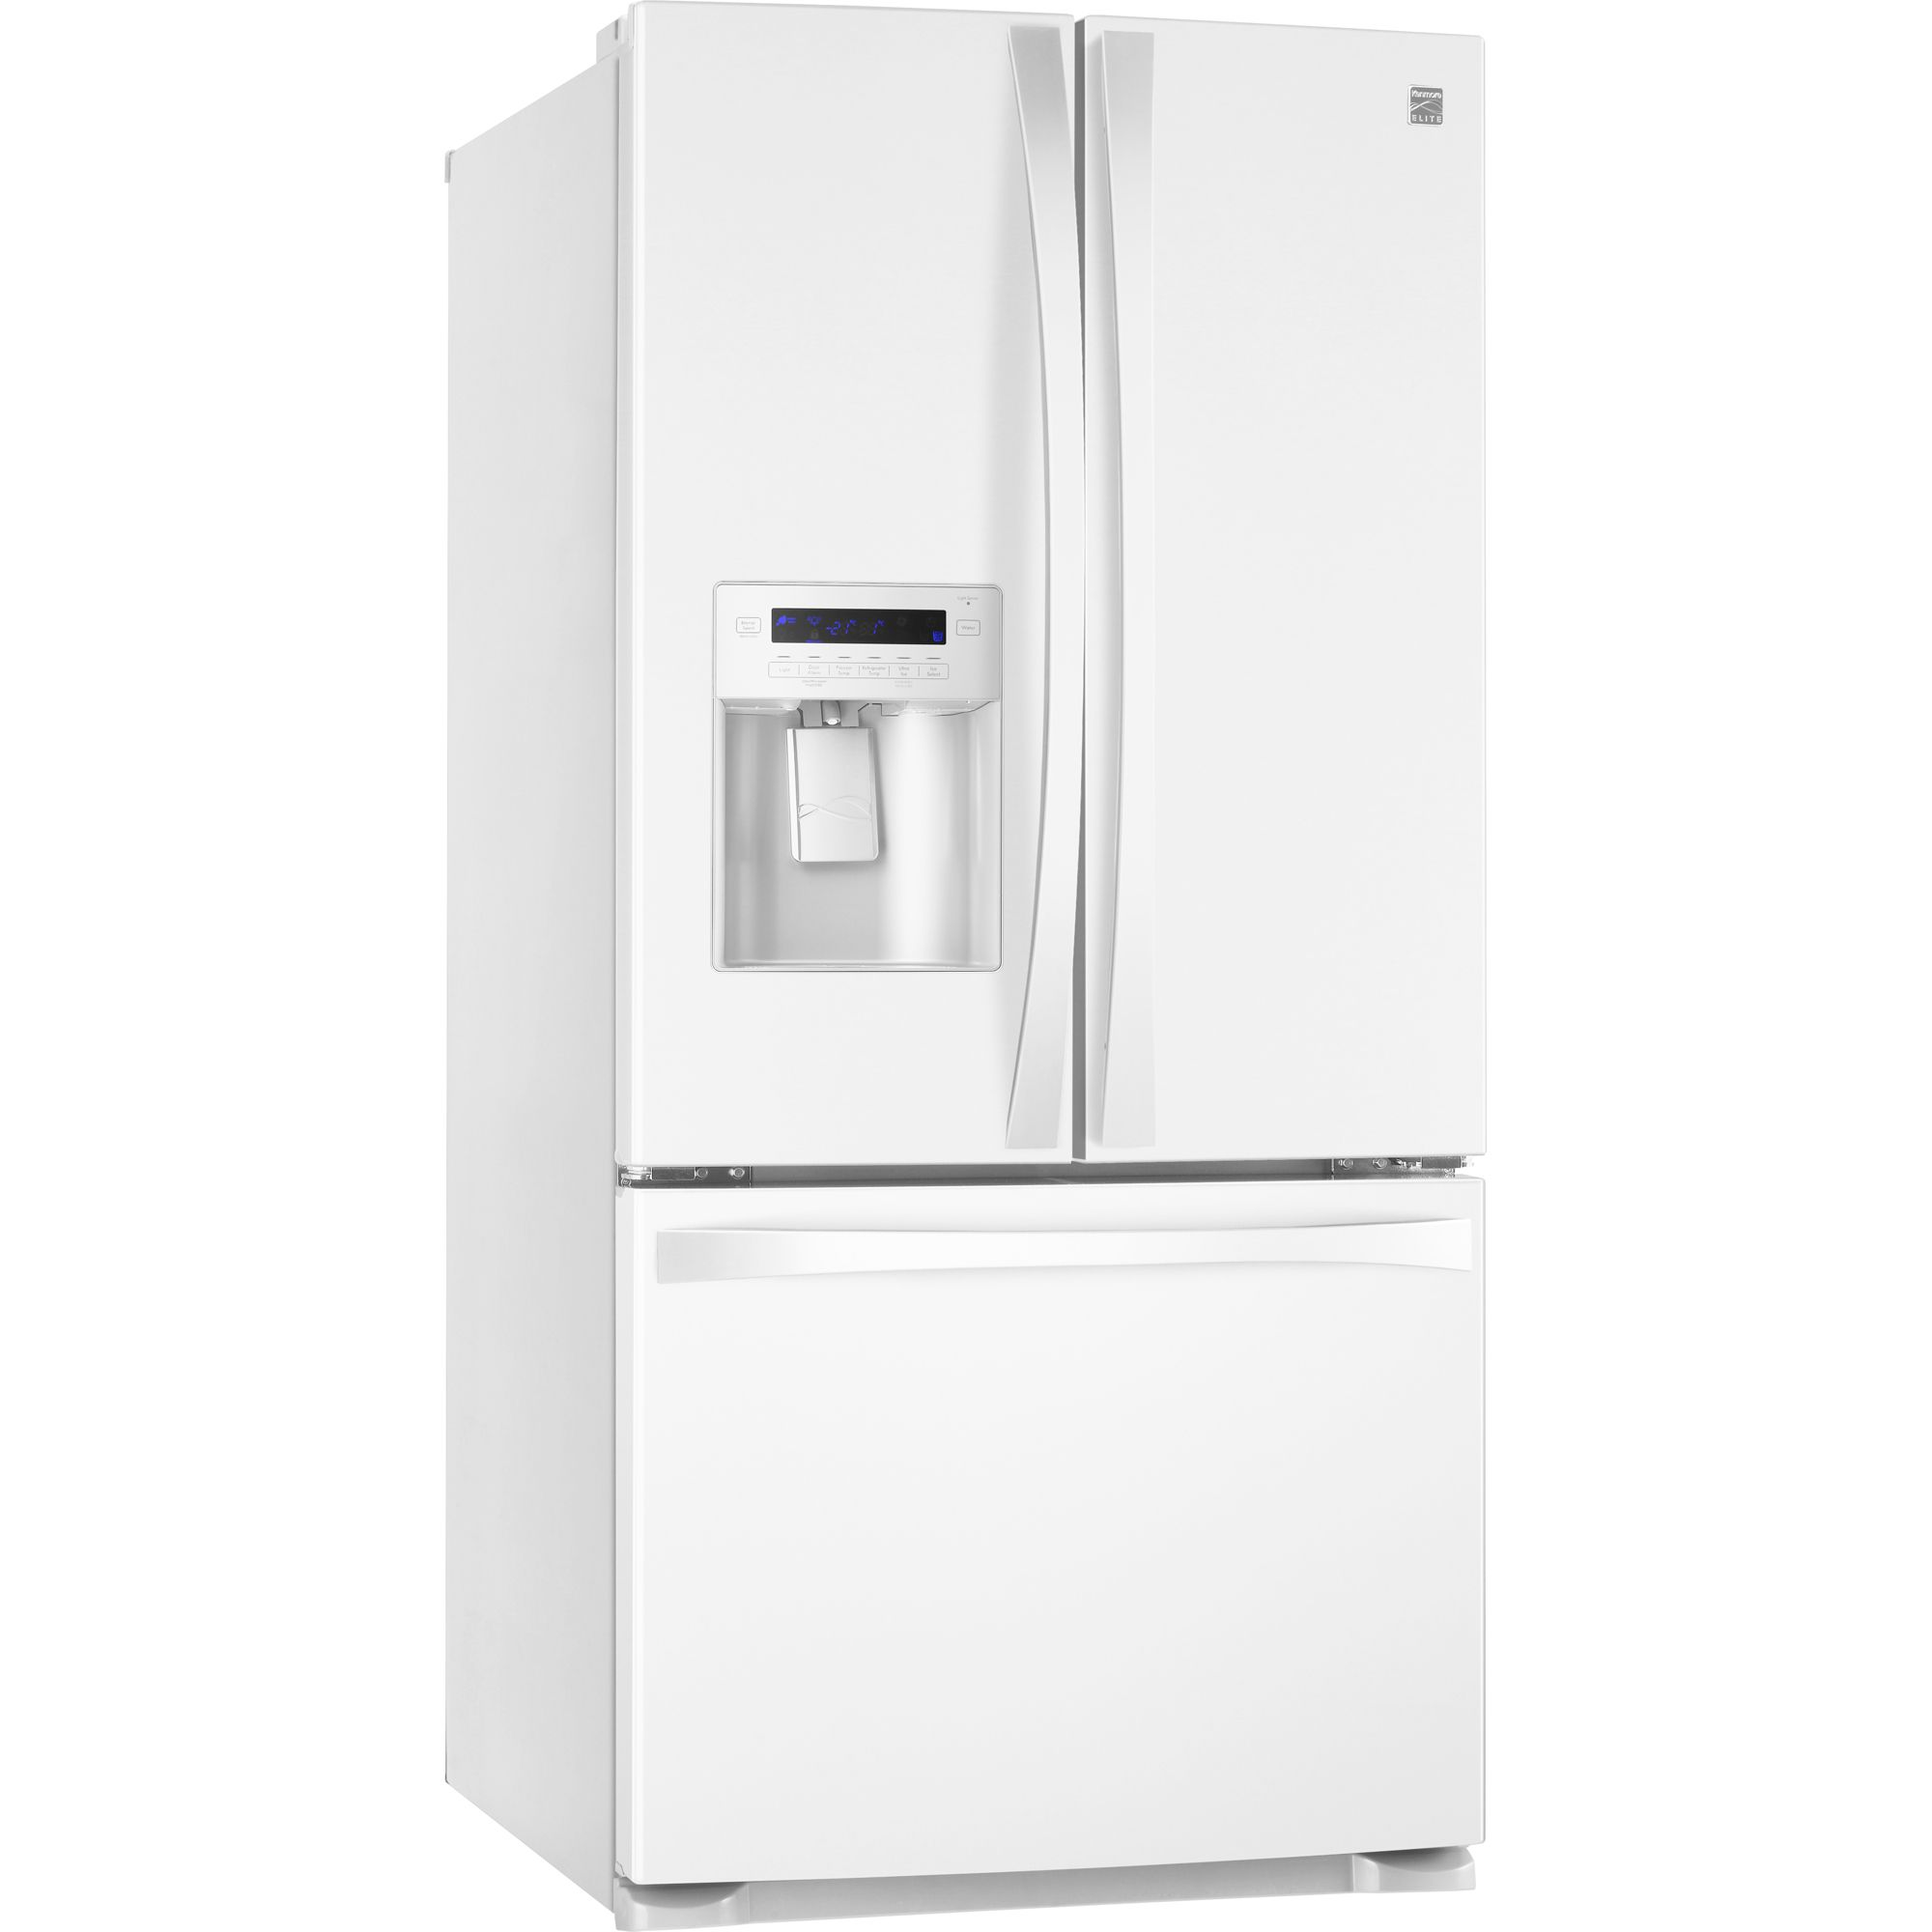 Kenmore Elite 25.0 cu. ft. French-Door Bottom-Freezer Refrigerator - White